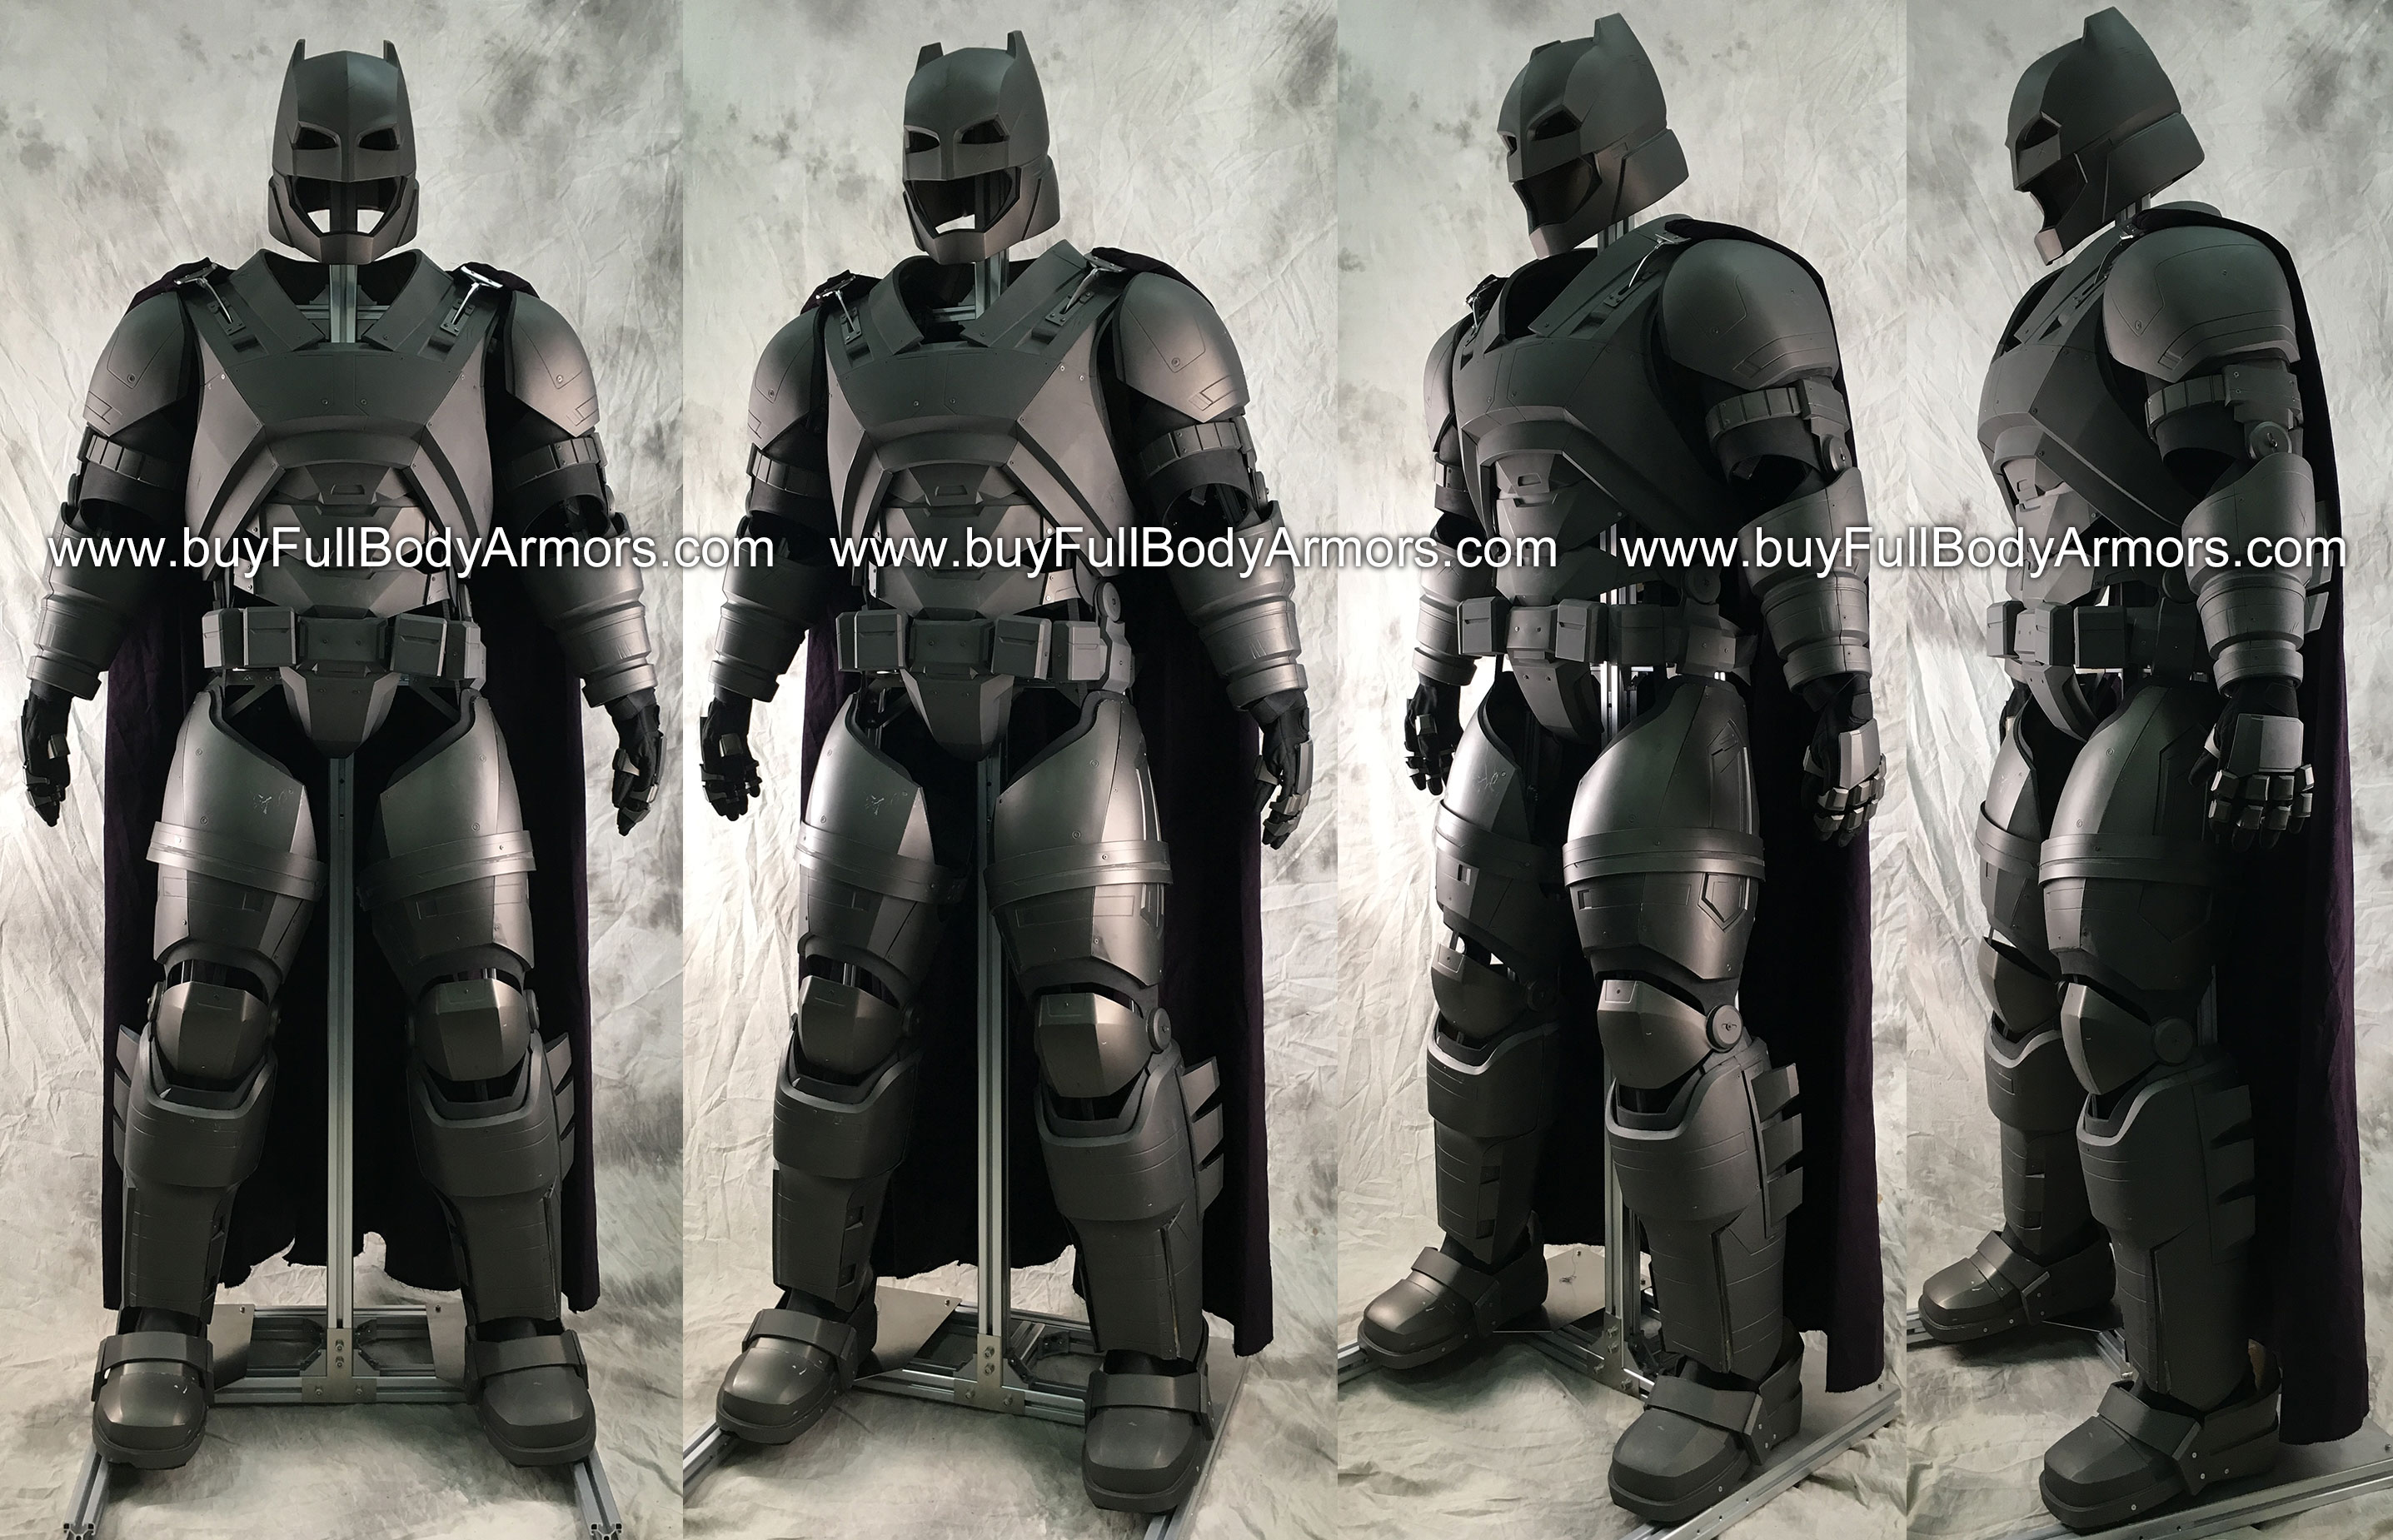 Put an Armored Batsuit Armor Costume onto a Universal Aluminium Alloy Support (UAAS) 1